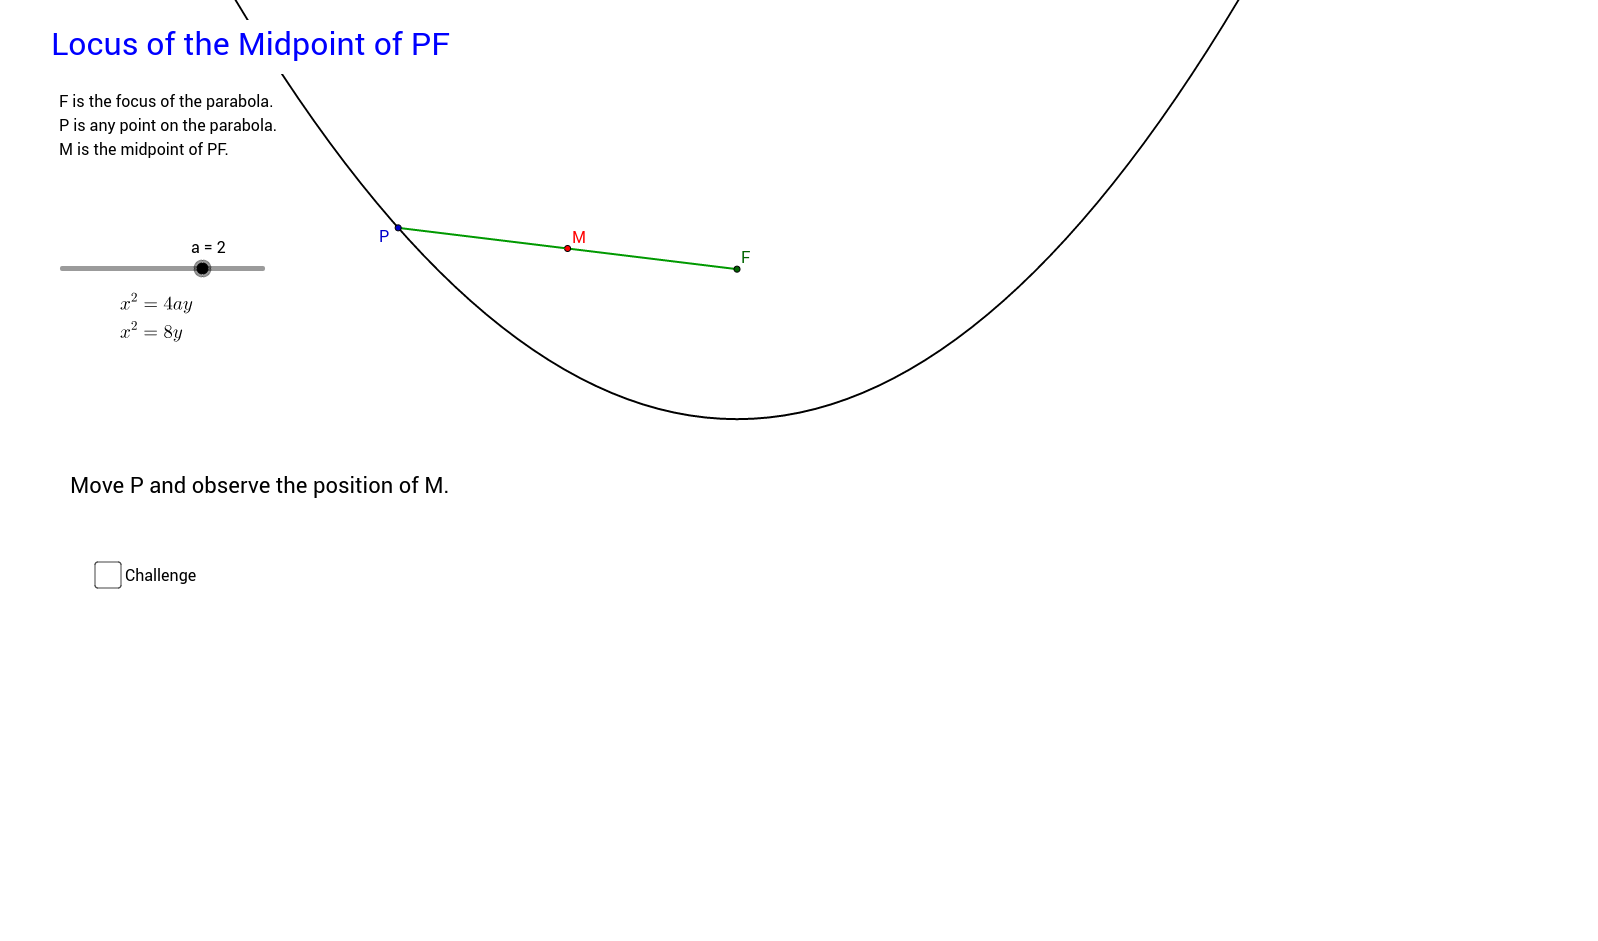 Locus of Midpoint of PF